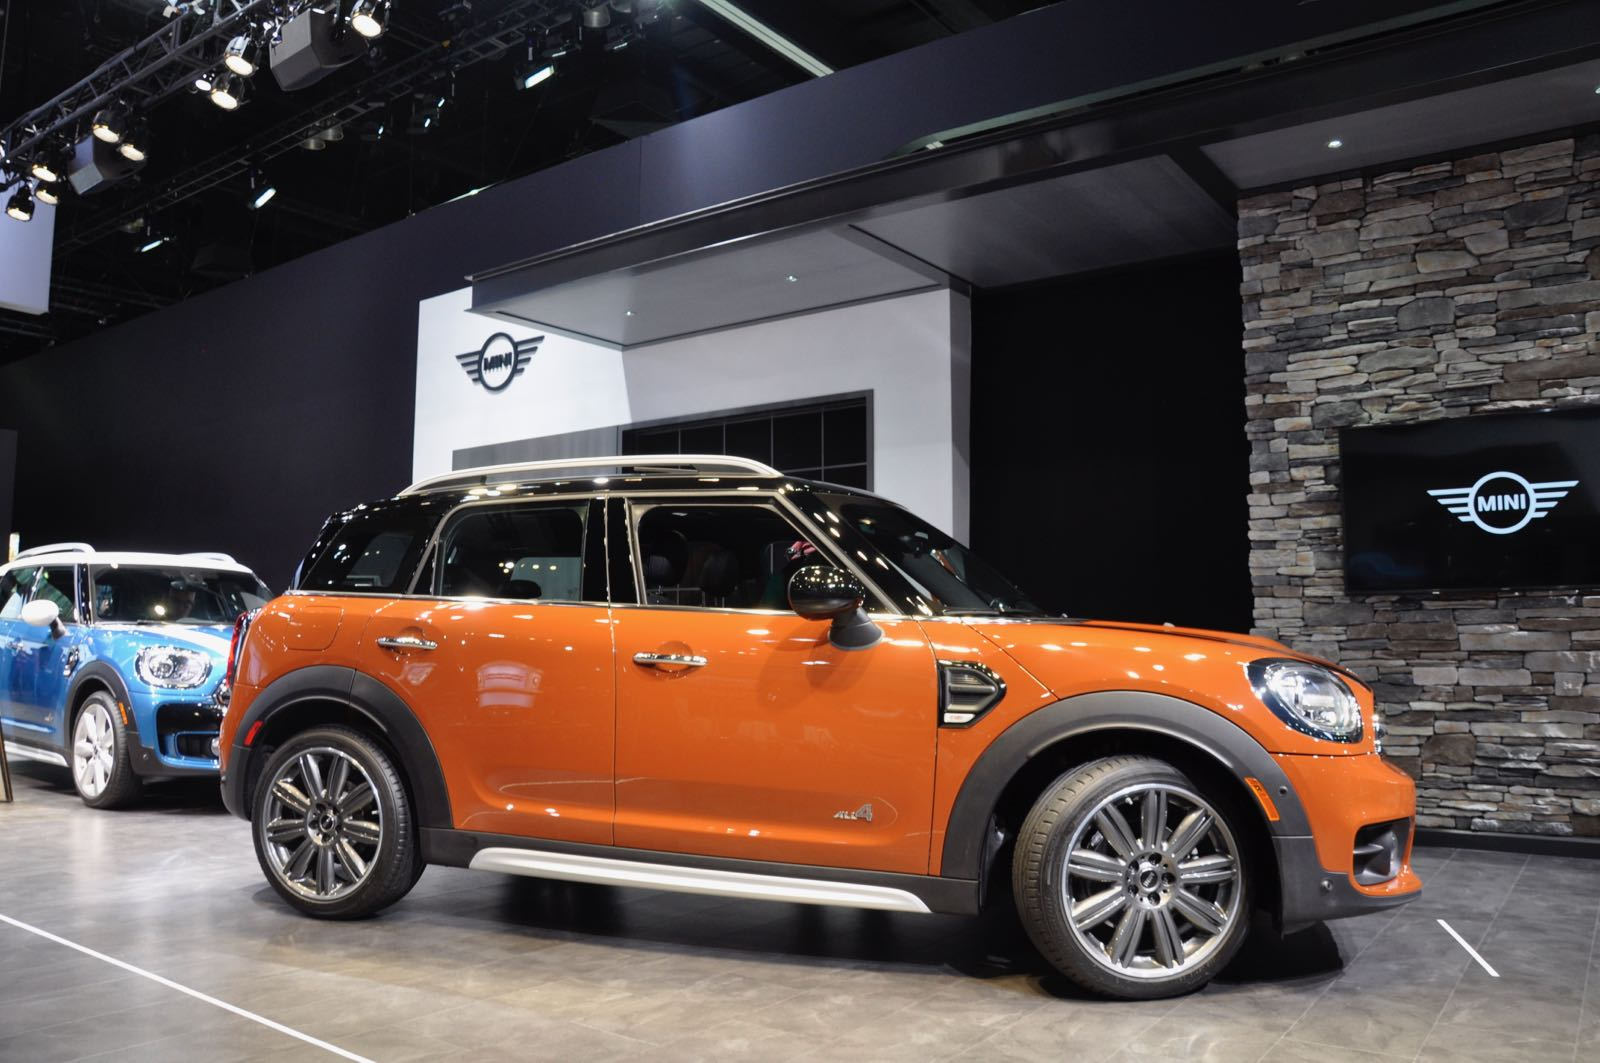 hands on review 2017 mini countryman motoringfile. Black Bedroom Furniture Sets. Home Design Ideas